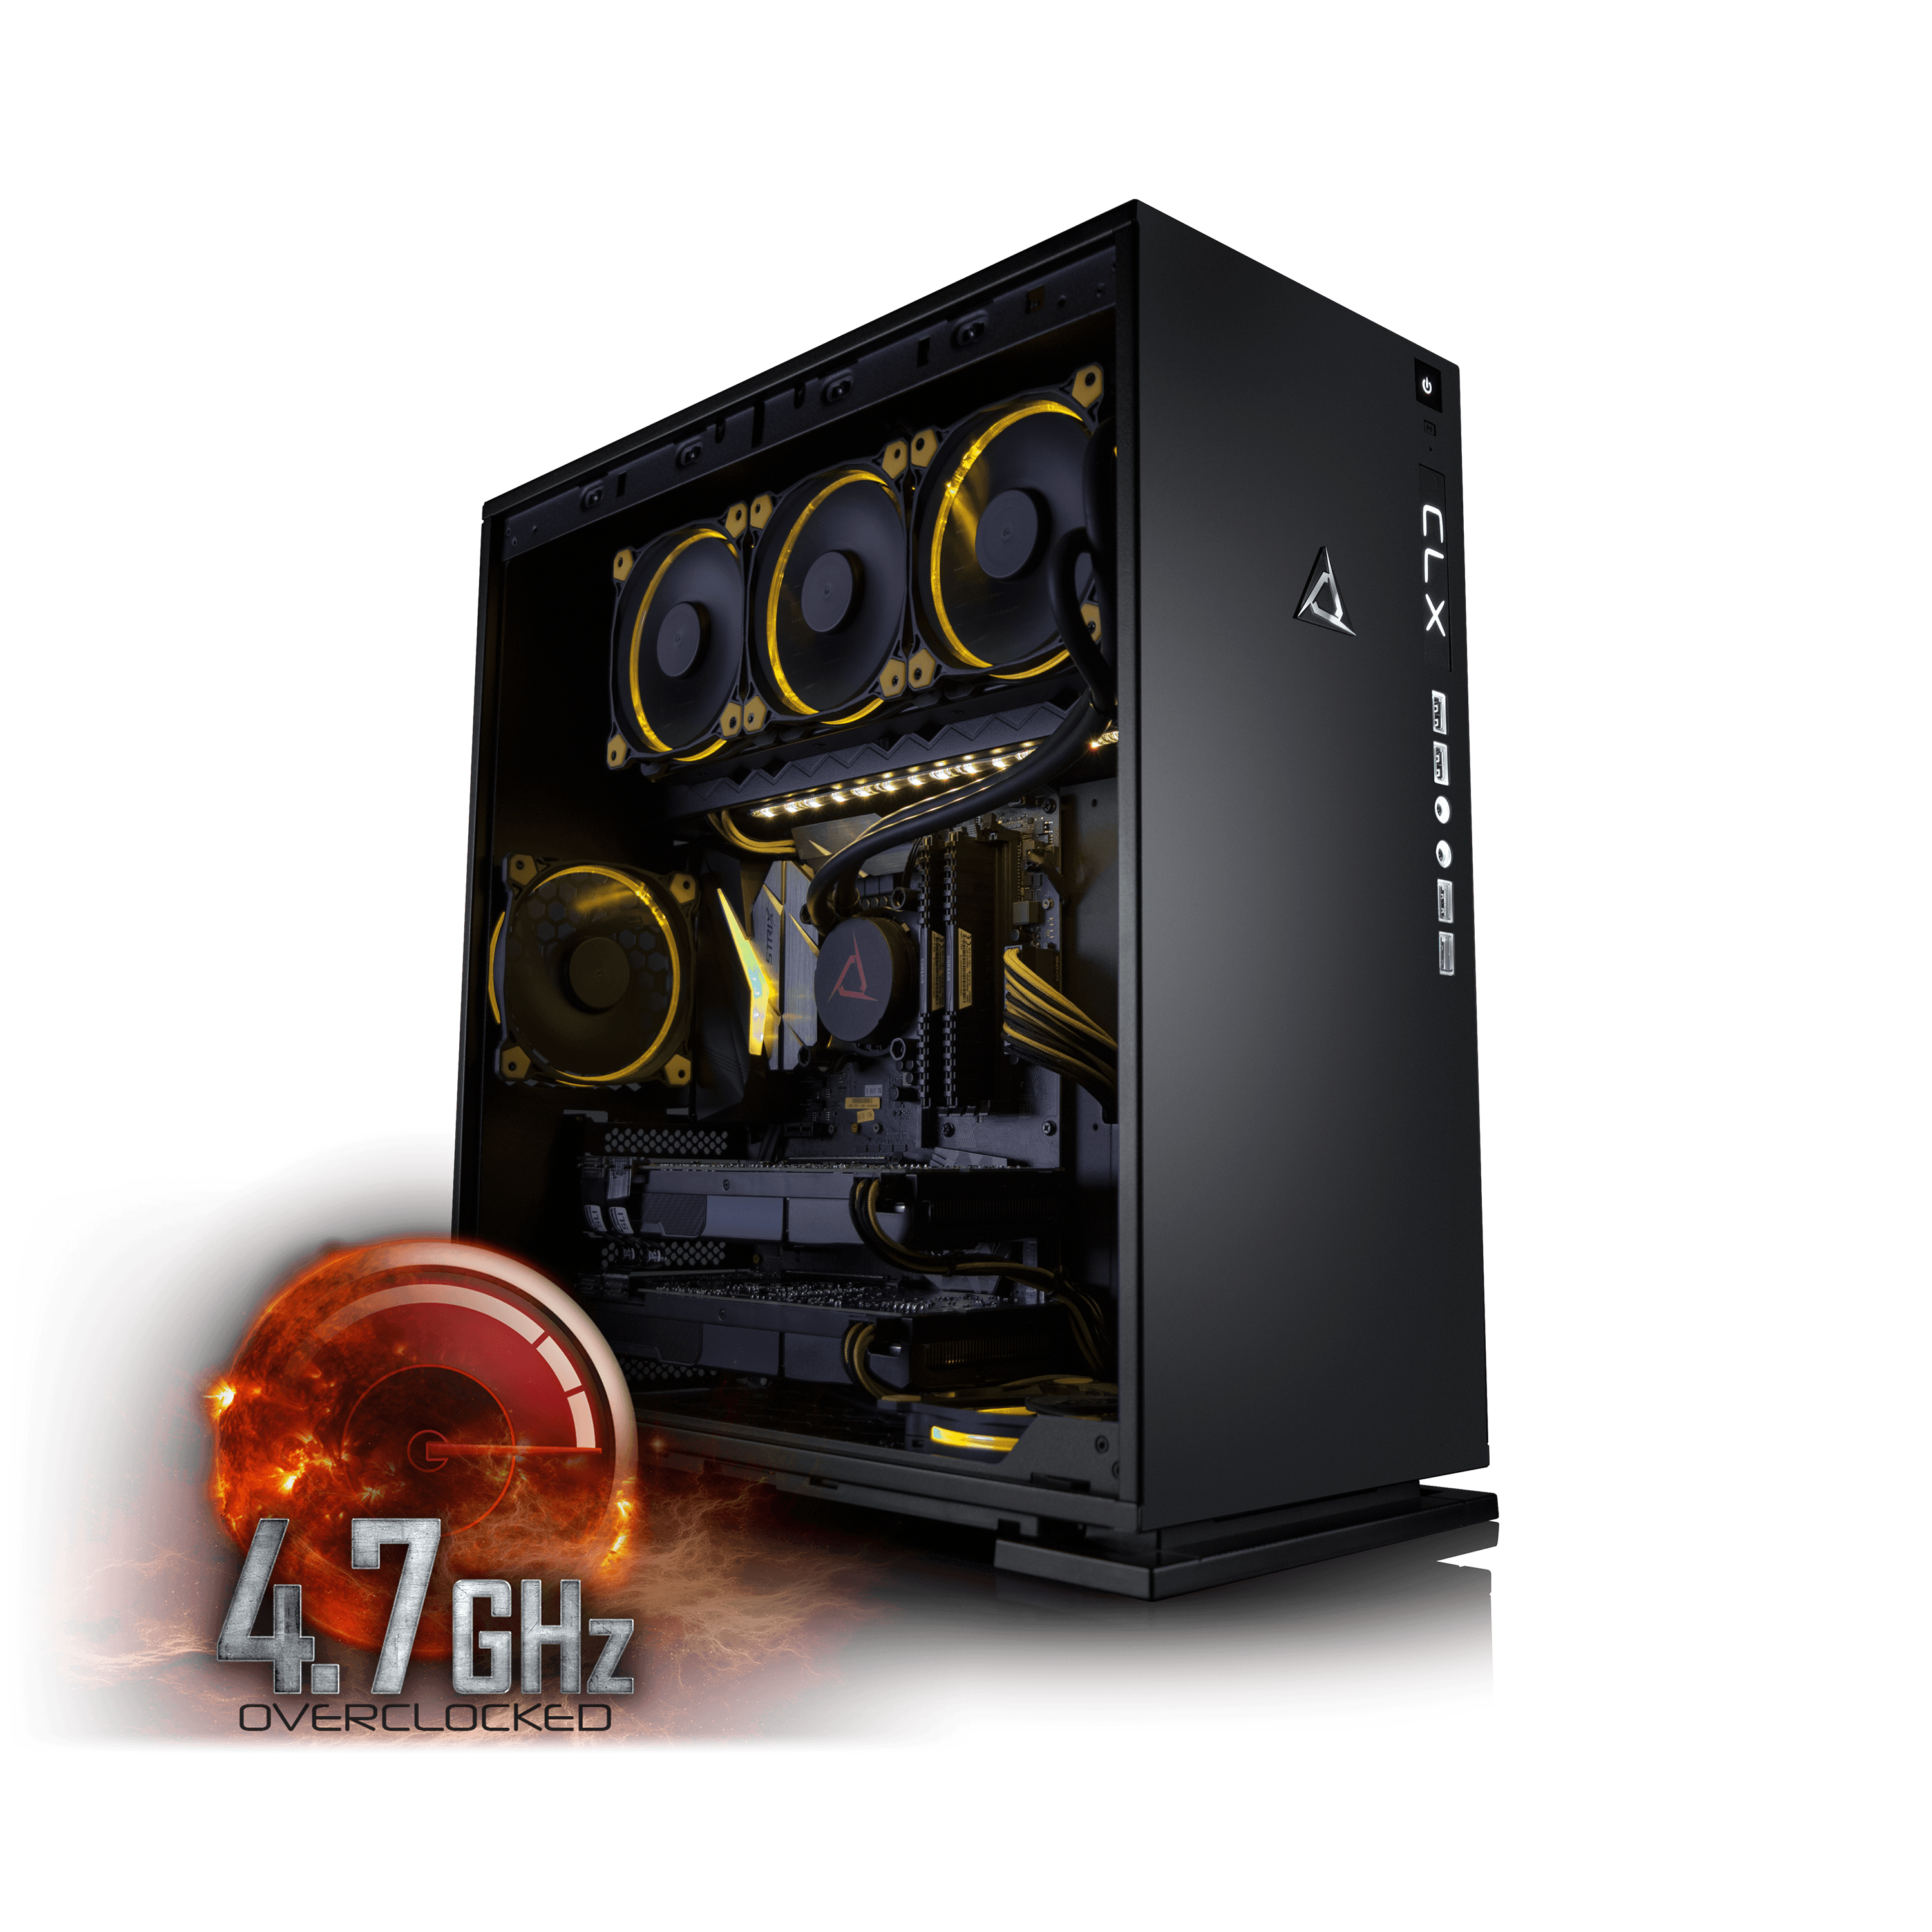 Click here to buy CybertronPC CLX Set High Performance Gaming PC Tripple-Liquid Cooled Z270 Asus Motherboard Intel i5 7600K 4.7GHz(OC)... by CybertronPC.